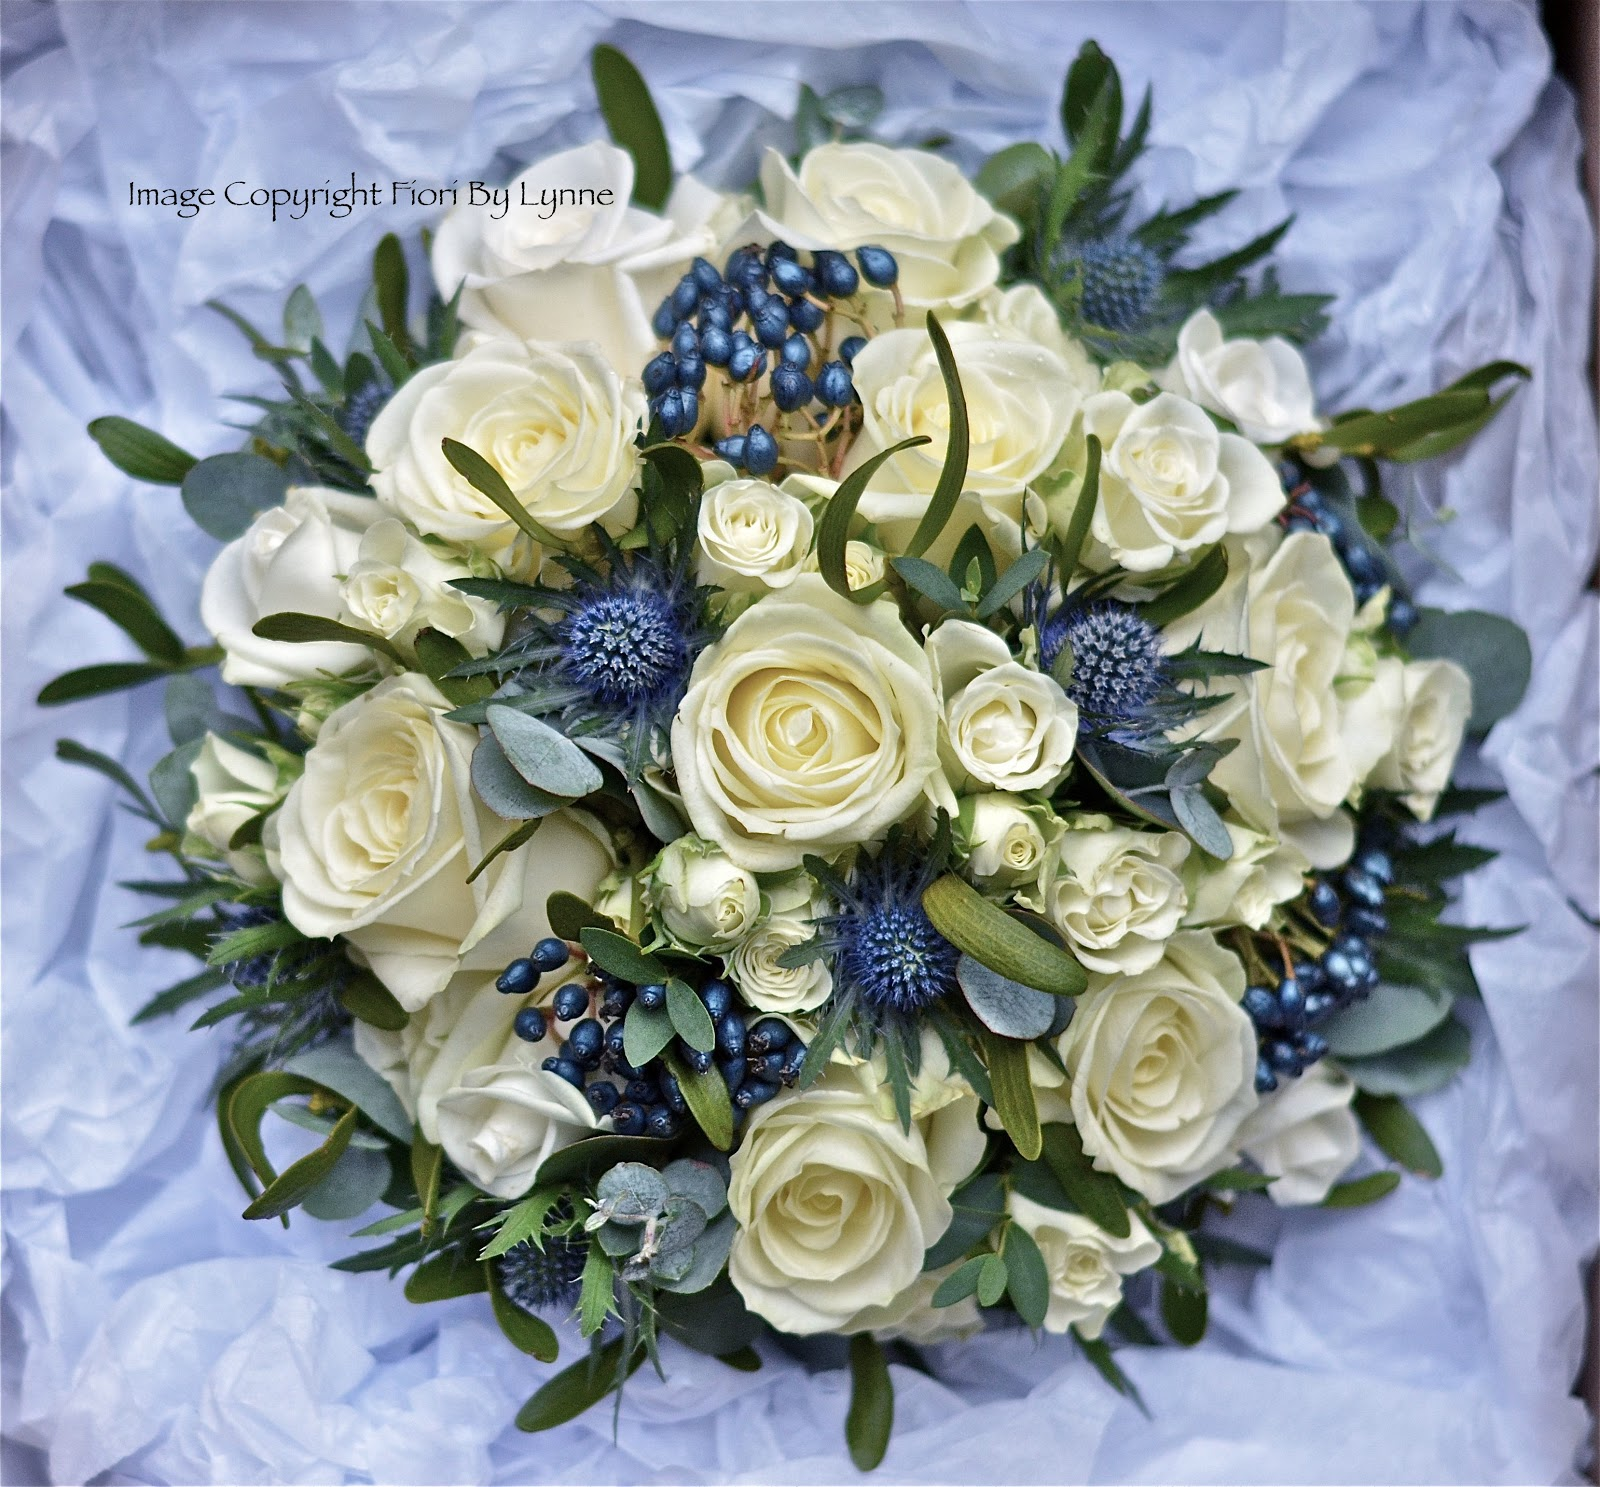 Wedding Flowers Blog Laura s Christmas Wedding Flowers Roses and Thistles